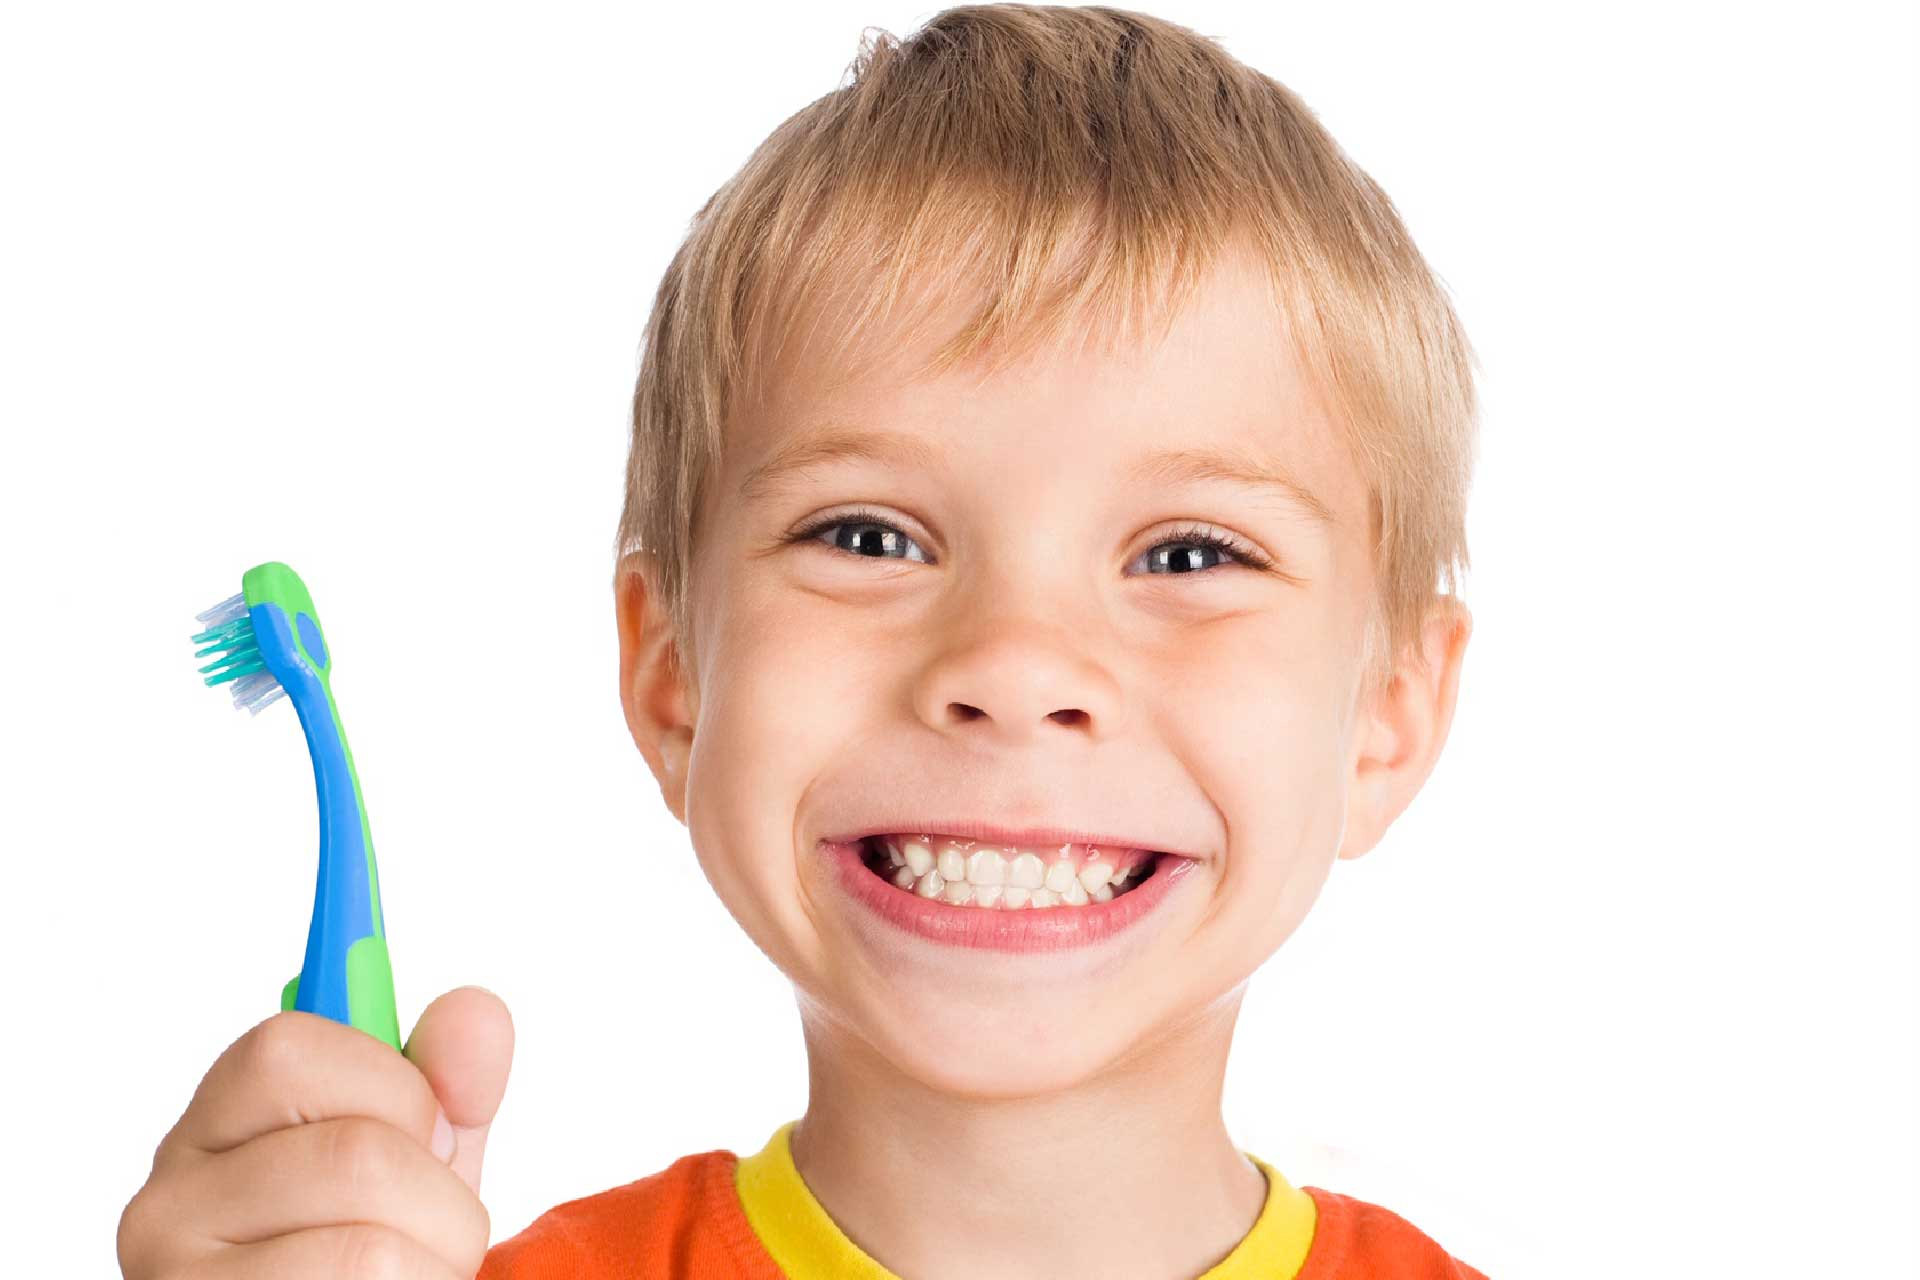 Should Your Child Be Using Fluoride Toothpaste?